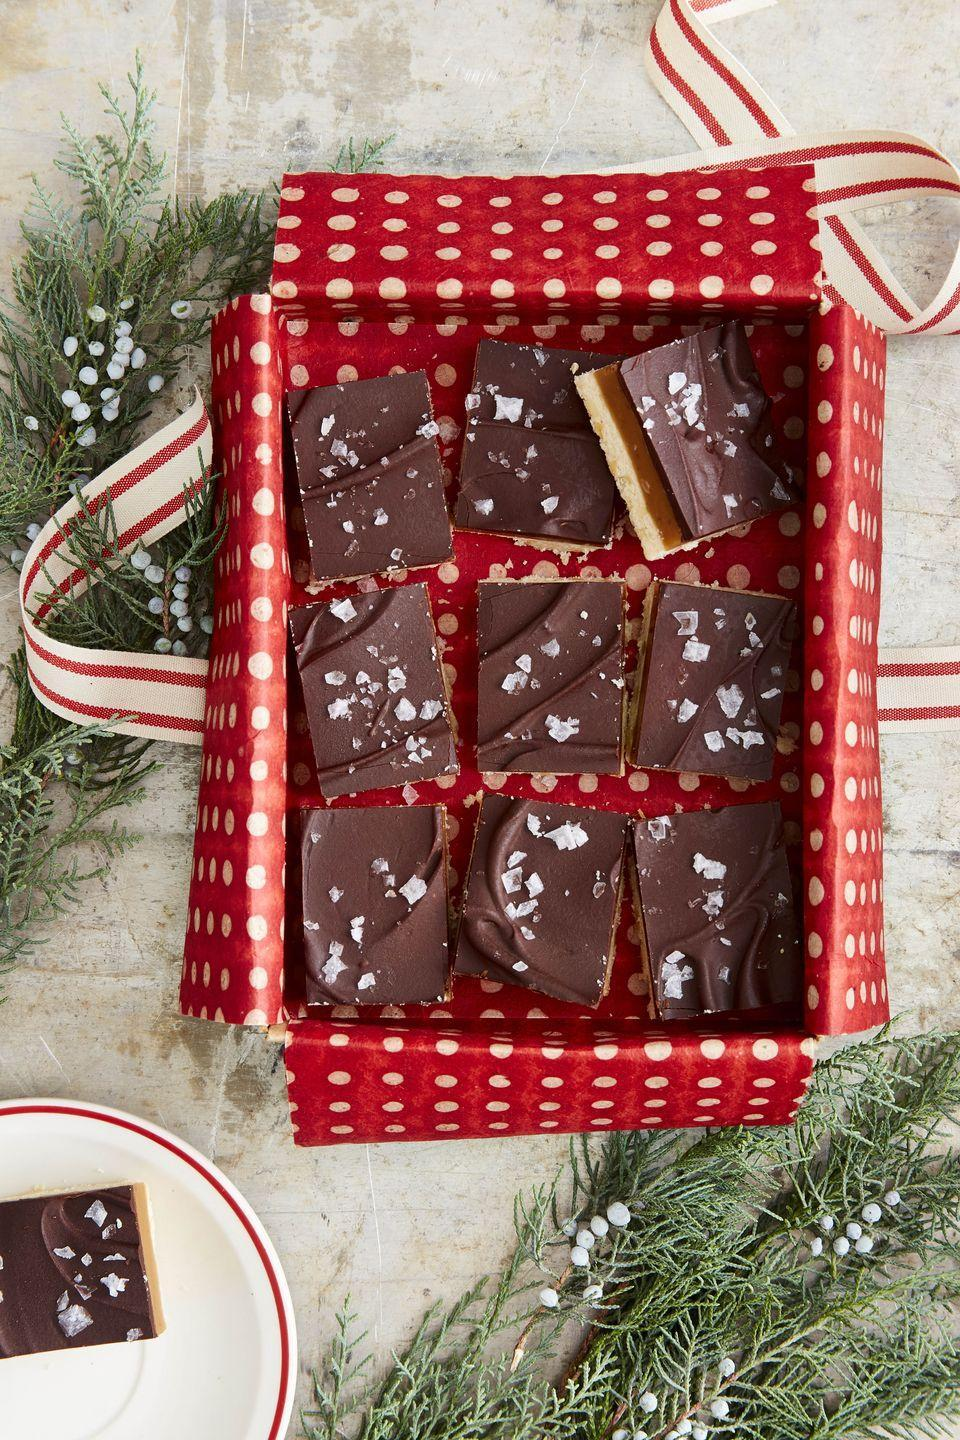 """<p>Three layers of rich goodness—buttery shortbread, gooey caramel, and a thick layer of dark chocolate—make up this well-healed dessert. </p><p><strong><a href=""""https://www.countryliving.com/food-drinks/a34331924/millionaires-shortbread-recipe/"""" rel=""""nofollow noopener"""" target=""""_blank"""" data-ylk=""""slk:Get the recipe"""" class=""""link rapid-noclick-resp"""">Get the recipe</a>.</strong></p><p><a class=""""link rapid-noclick-resp"""" href=""""https://go.redirectingat.com?id=74968X1596630&url=https%3A%2F%2Fwww.williams-sonoma.com%2Fproducts%2Fkitchenaid-artisan-mini-with-flex-edge-beater%2F&sref=https%3A%2F%2Fwww.countryliving.com%2Ffood-drinks%2Fg647%2Fholiday-cookies-1208%2F"""" rel=""""nofollow noopener"""" target=""""_blank"""" data-ylk=""""slk:SHOP STAND MIXERS"""">SHOP STAND MIXERS</a></p>"""